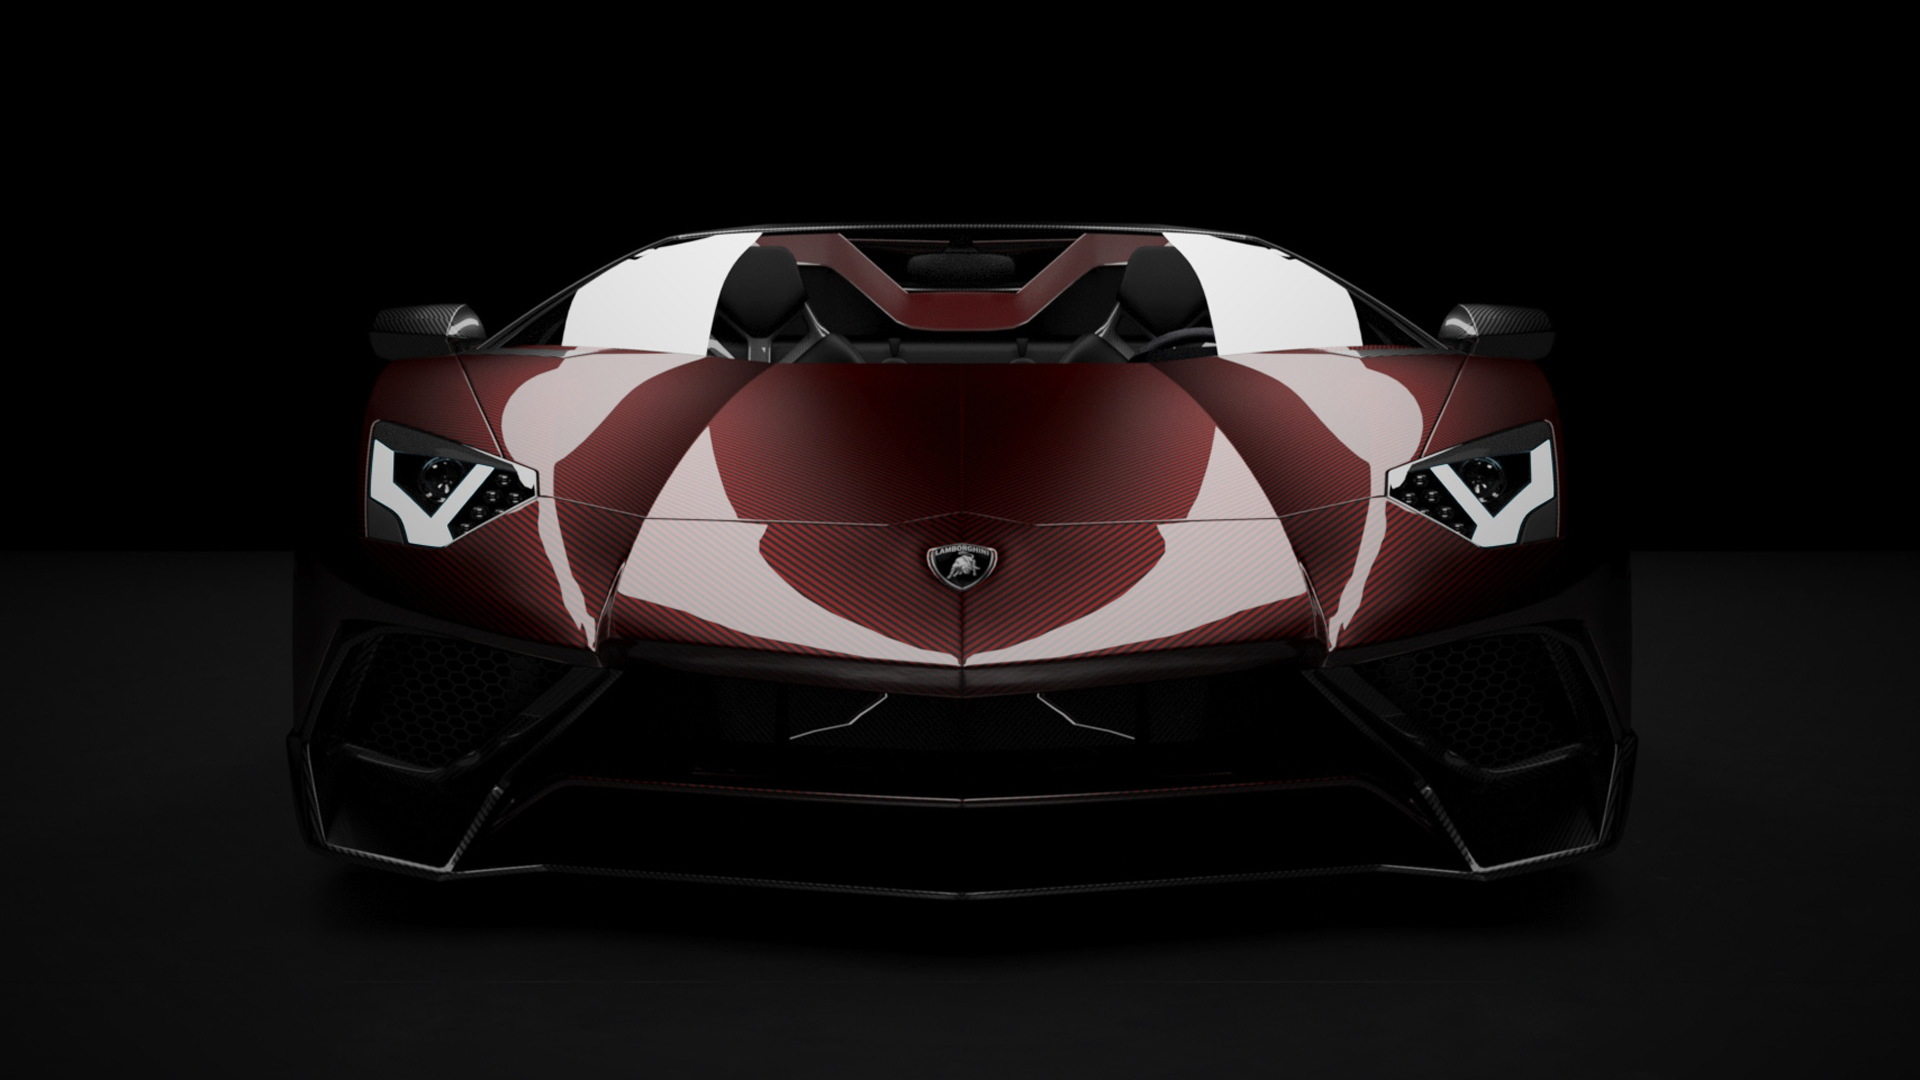 Vitesse-AuDessus carbon fiber parts for the Lamborghini Aventador LP 750-4 SuperVeloce